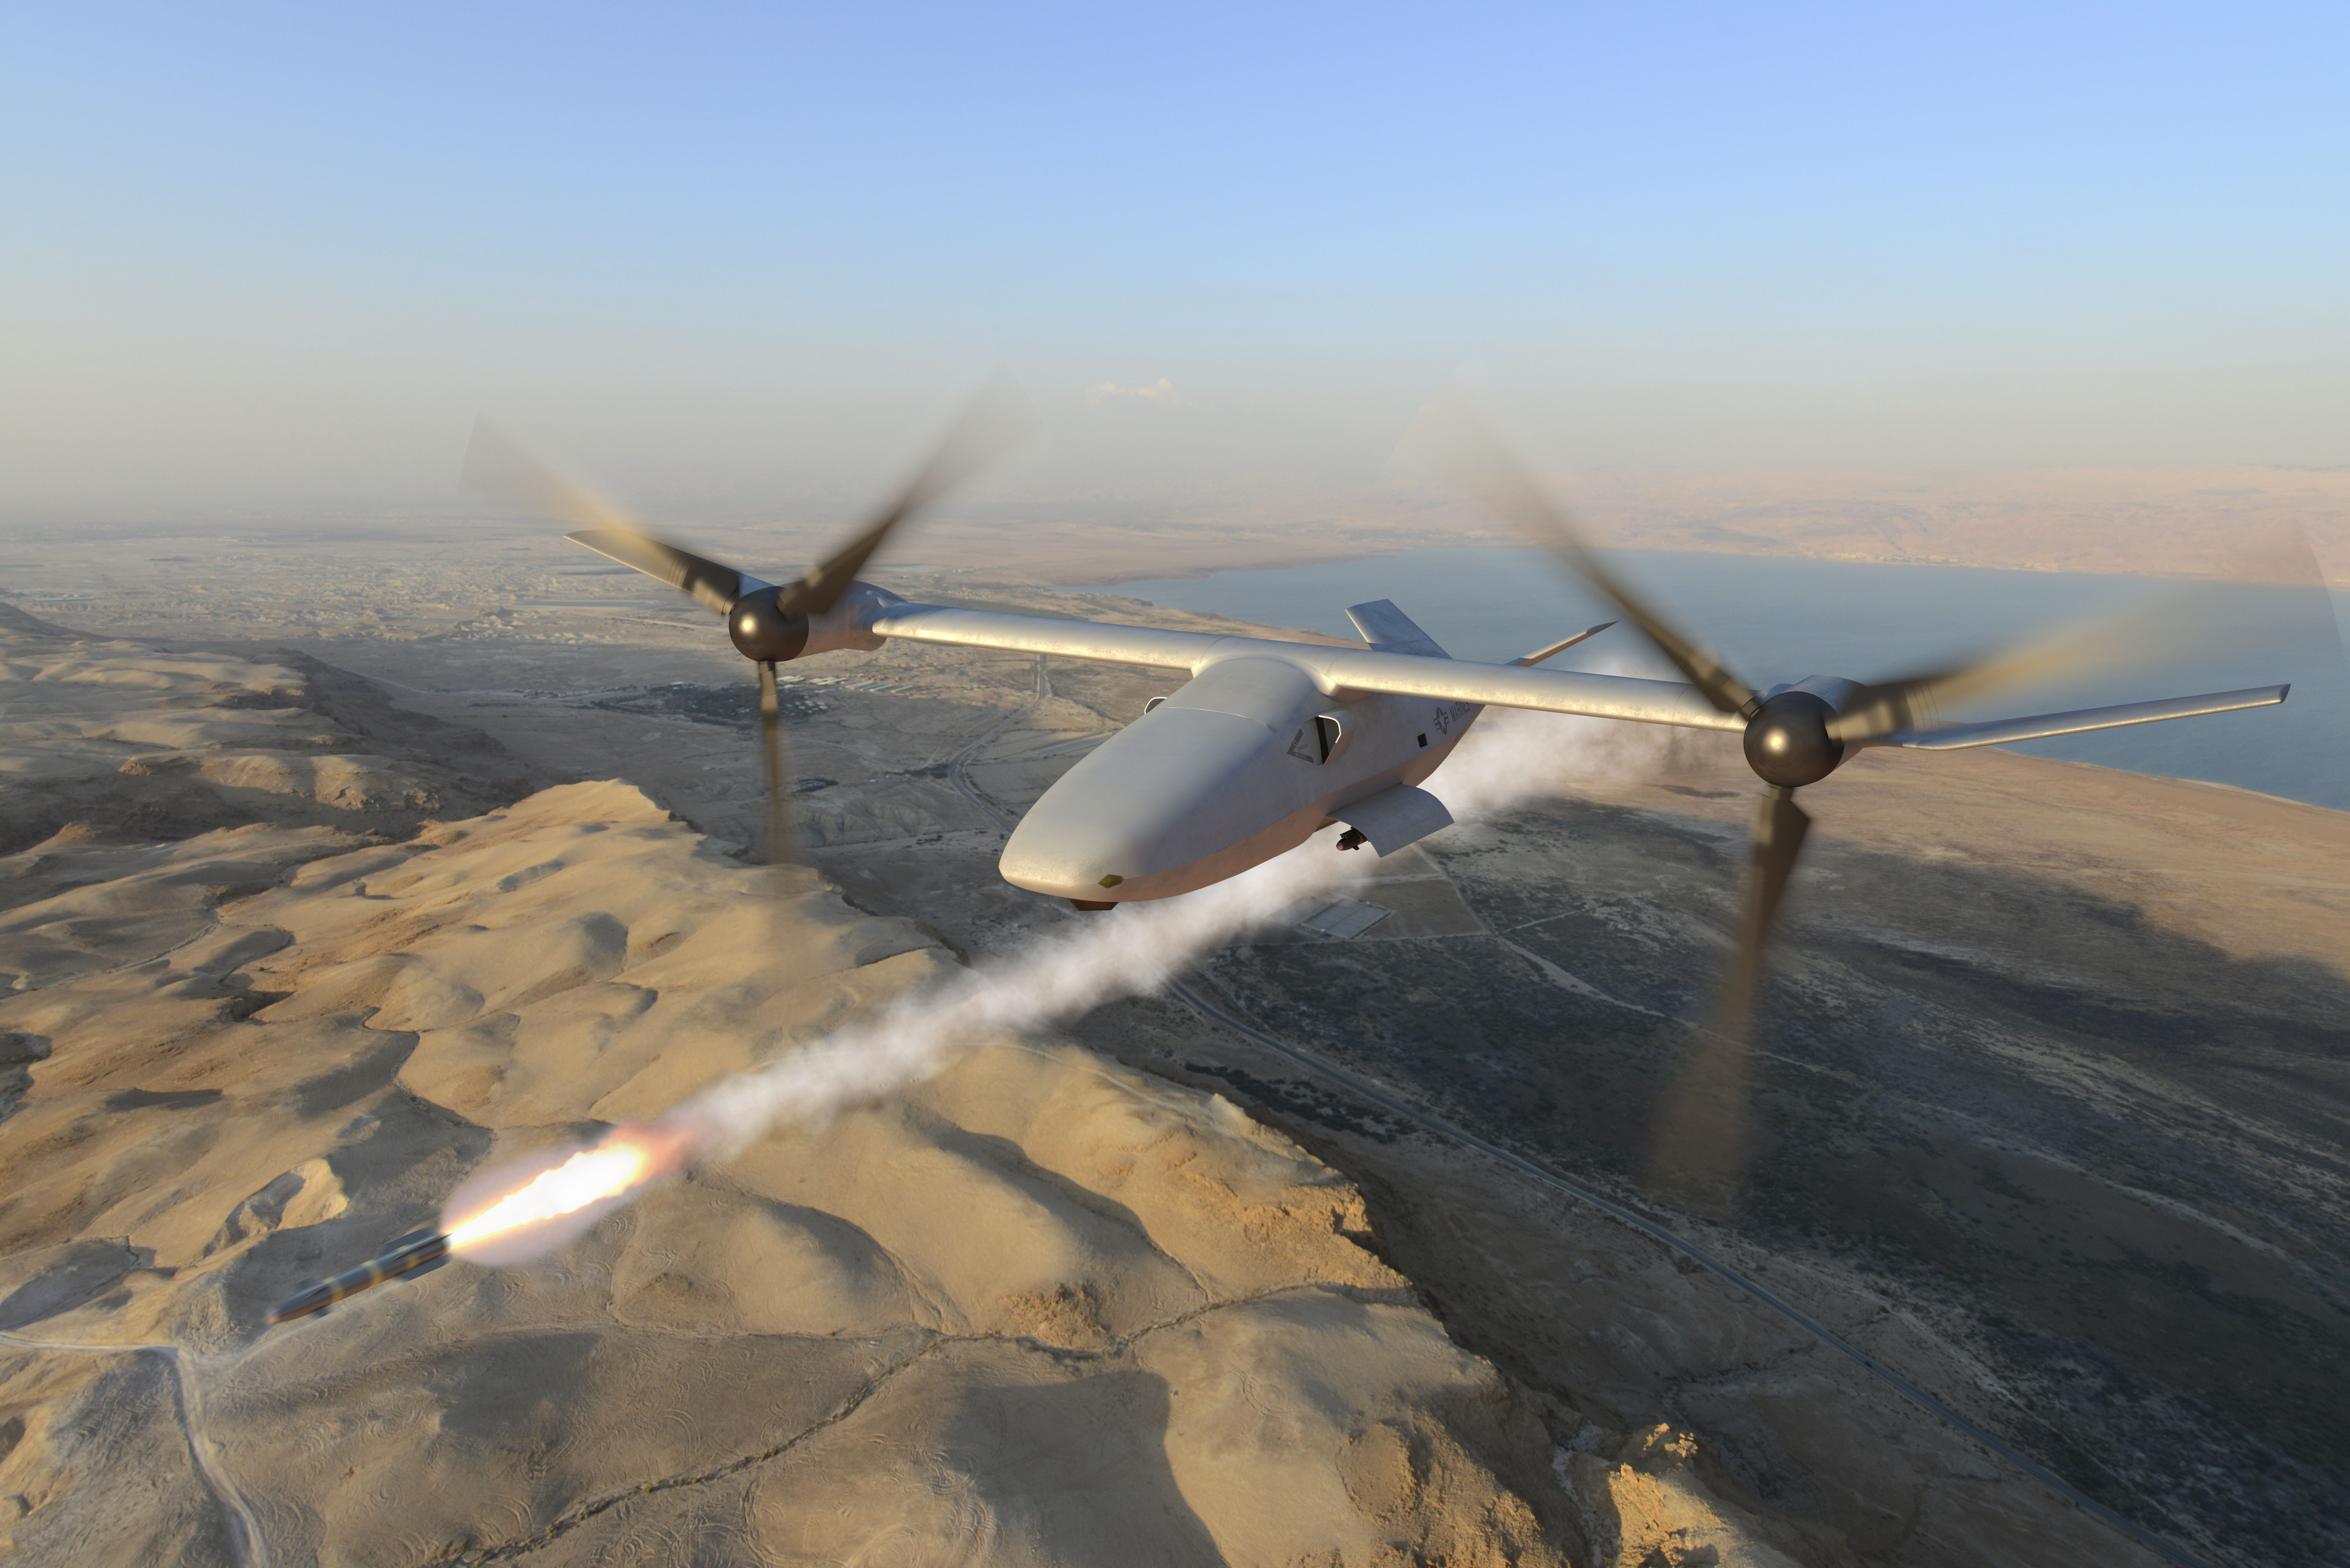 The Bell V-247 tiltrotor is an unmanned aerial system (UAS) that will combine the vertical lift capability of a helicopter with the speed and range of a conventional fixed-wing aircraft, and would provide long-endurance persistent expeditionary and surveillance and fires capabilities. Bell rendering.